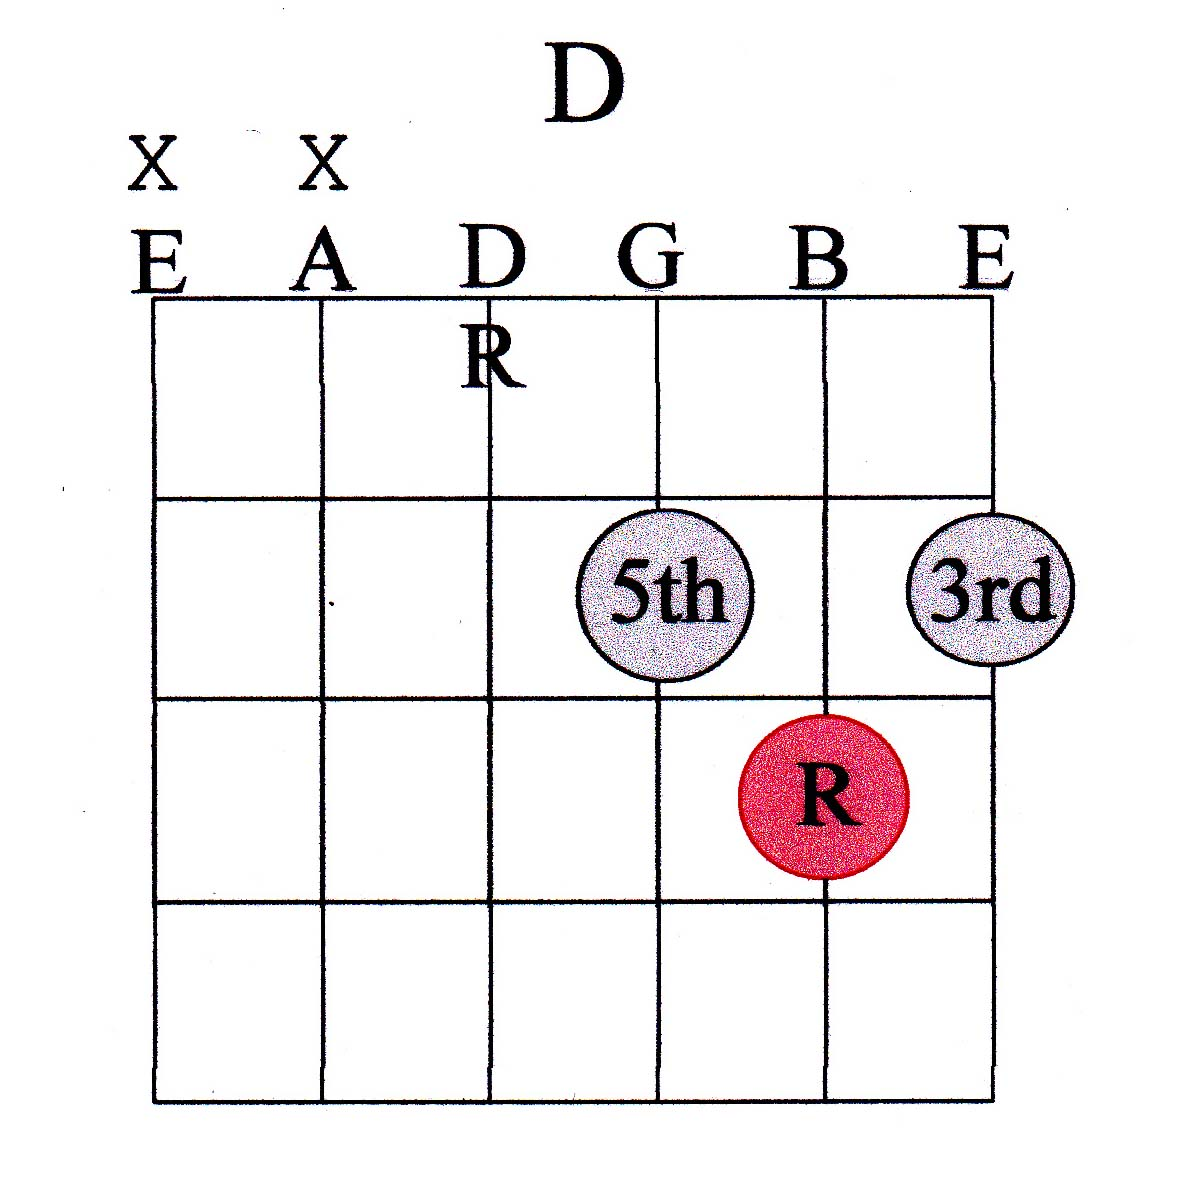 Guitar chord guide advanced marcus curtis music located above is a d chord the root note is in red the root note can also be called the tonic note hexwebz Gallery